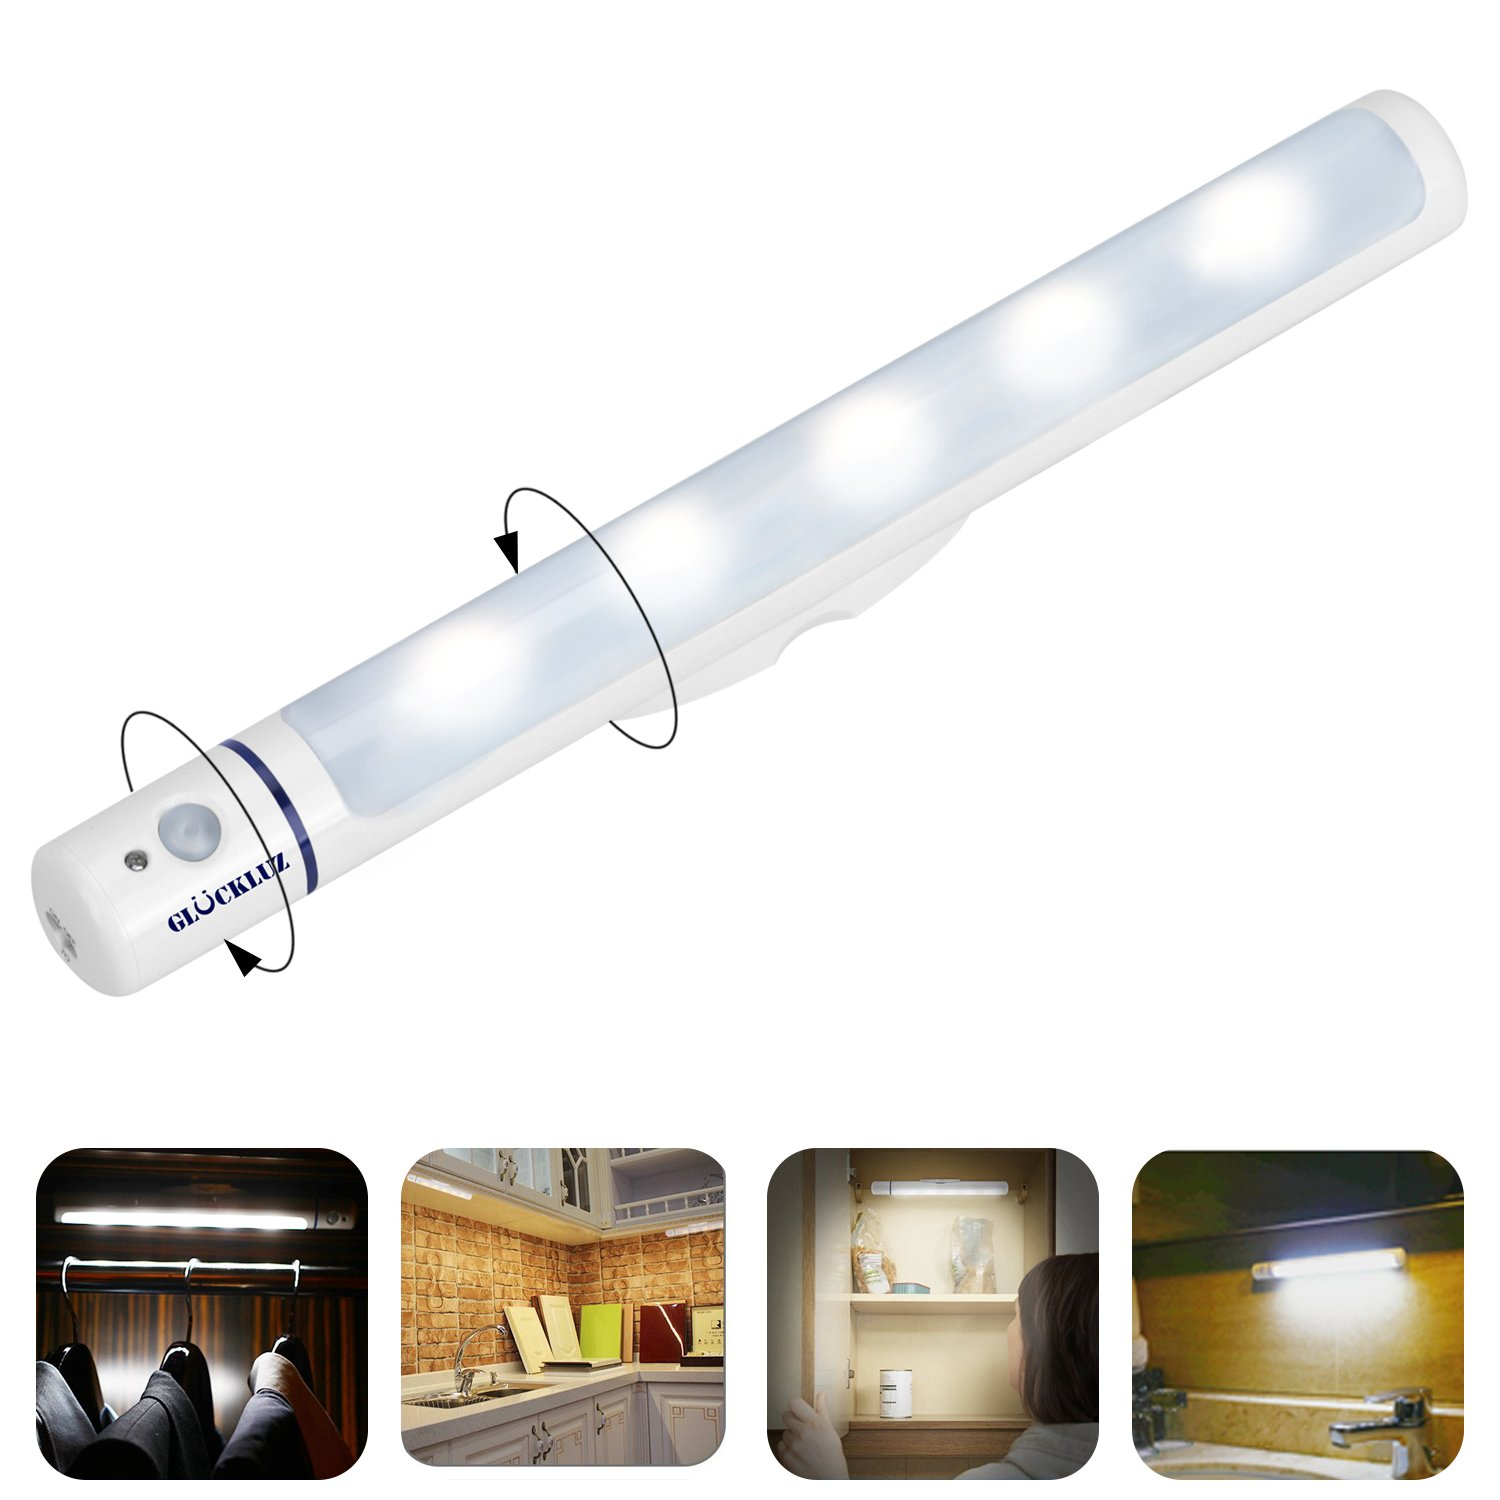 Glückluz Super Bright Detachable 180° Rotative Motion Sensor LED Night Cabinet Lights Flashlight Emergency Lighting All in One Auto On/Off for Bathroom, Wall, Kitchen, Bedroom, Closet (Cool White)